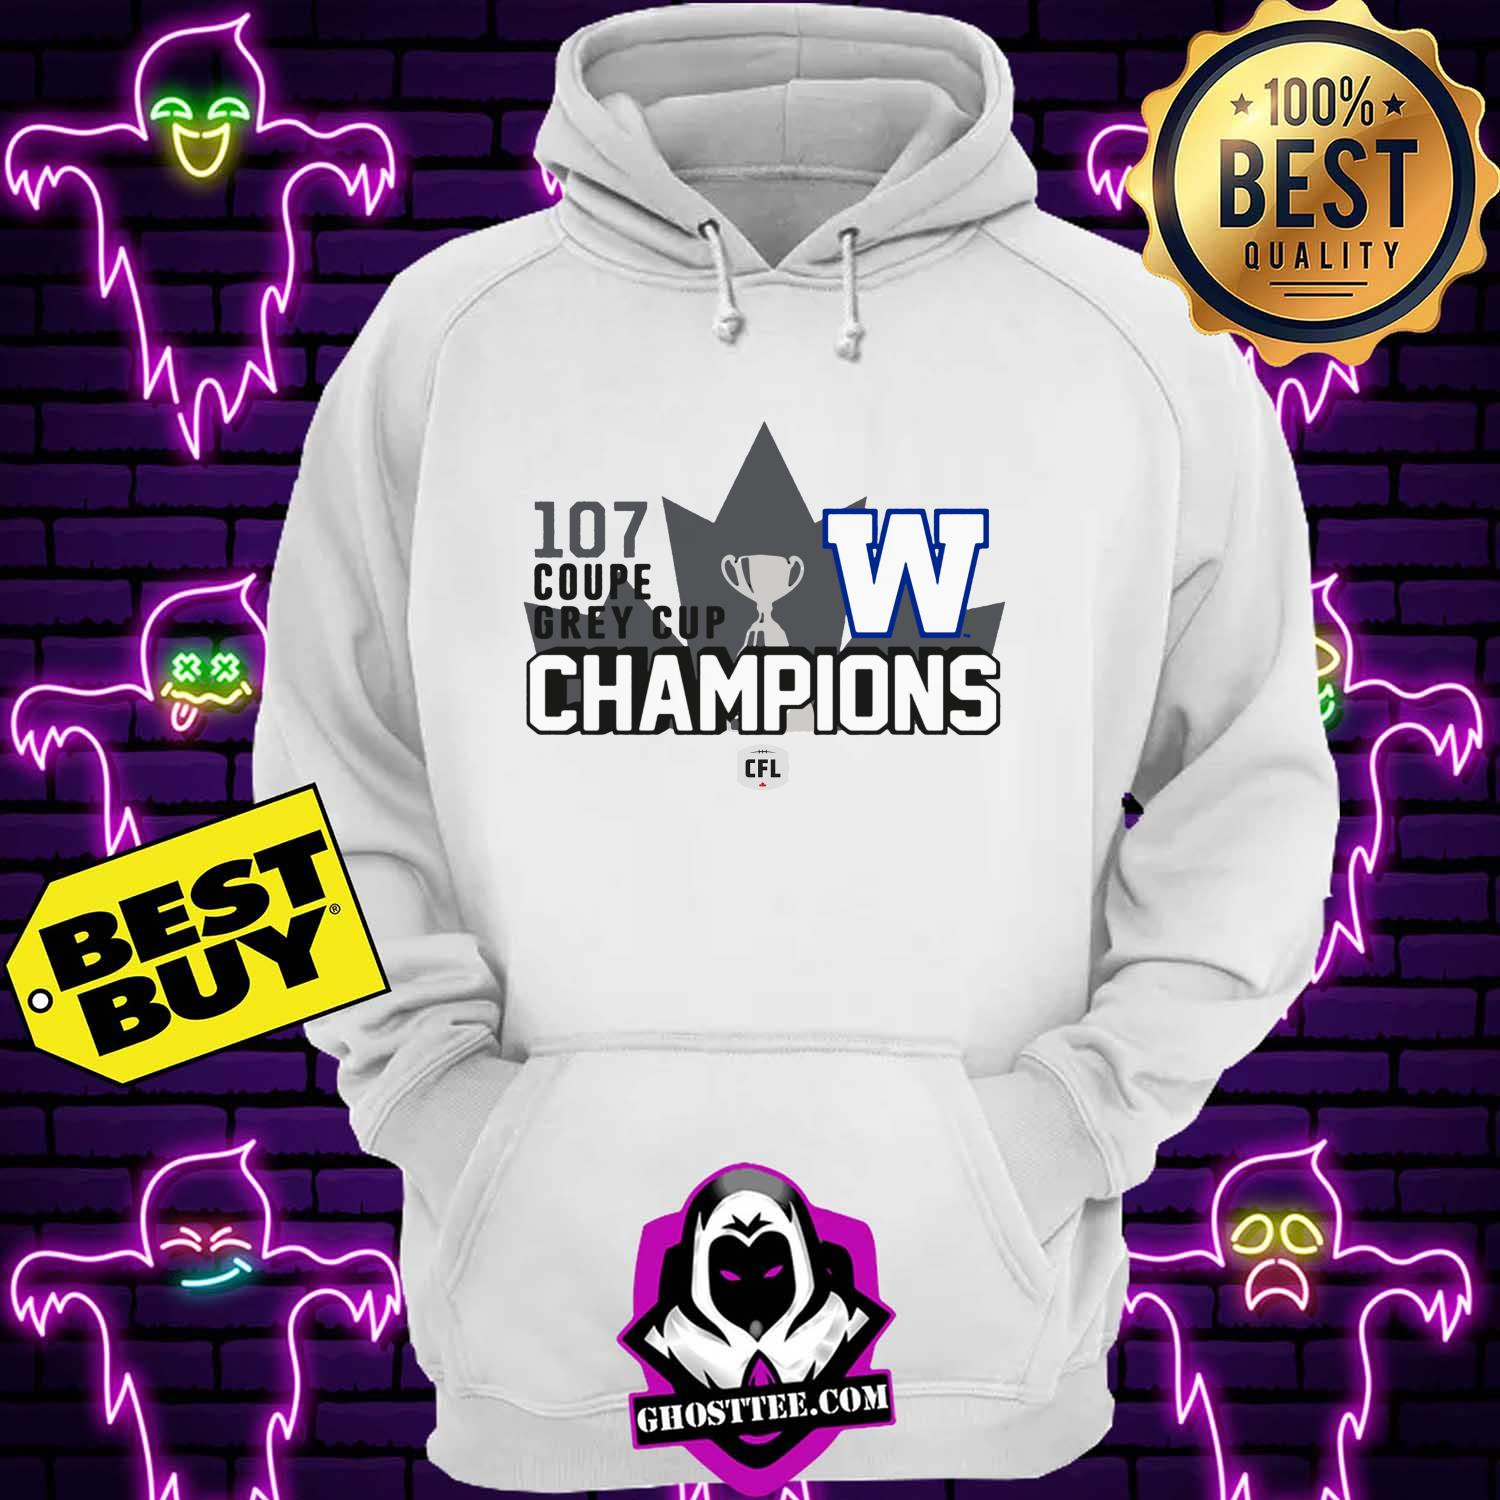 107th coupe grey cup winnipeg blue bombers champions cfl hoodie - 107th Coupe Grey Cup Winnipeg Blue Bombers Champions CFL shirt